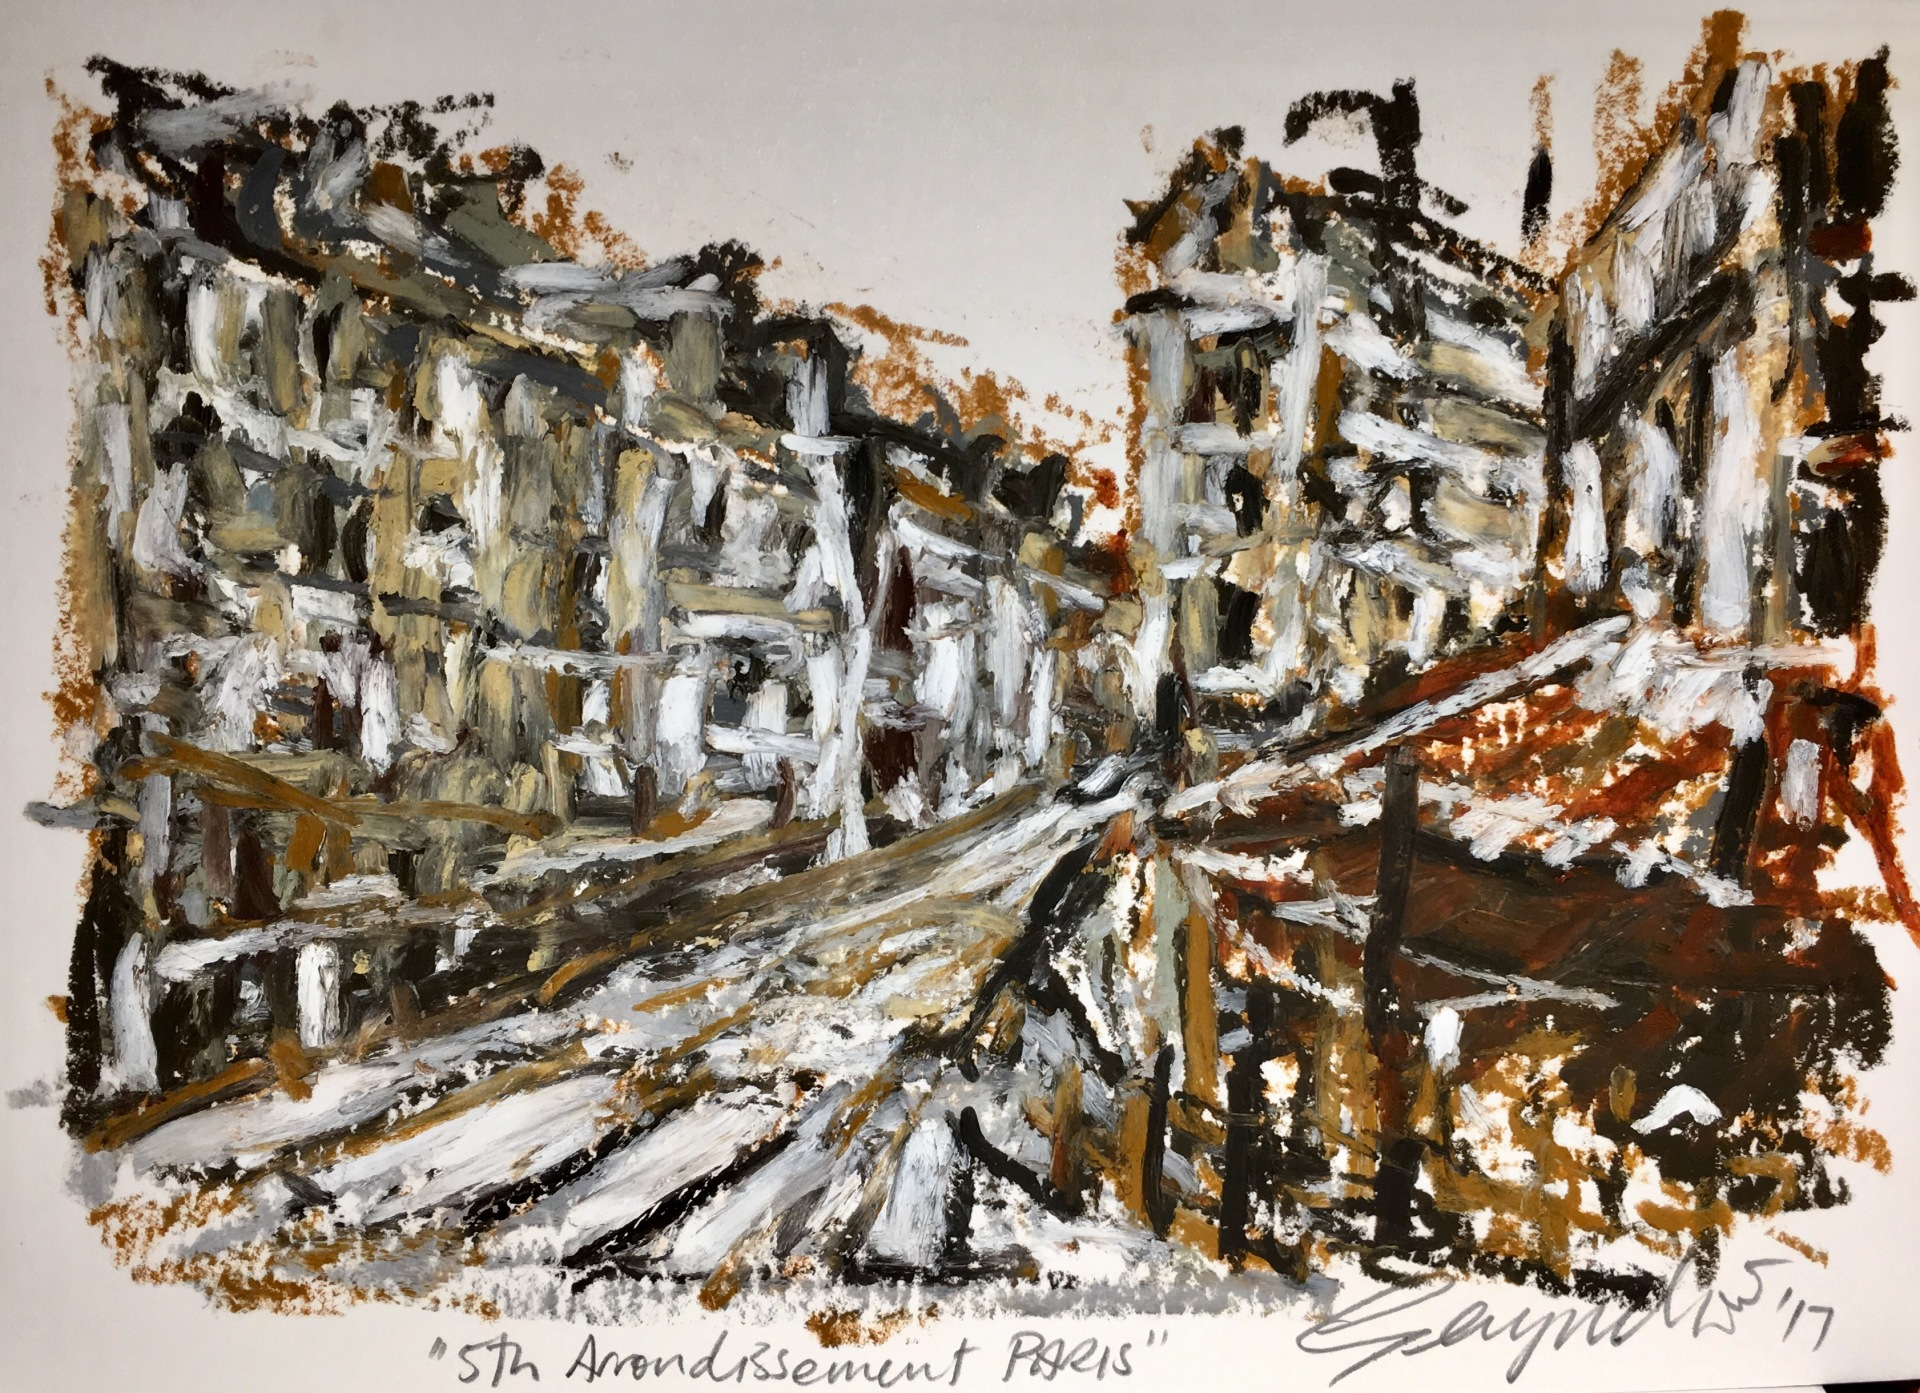 5th Arrondissement Paris (SOLD)